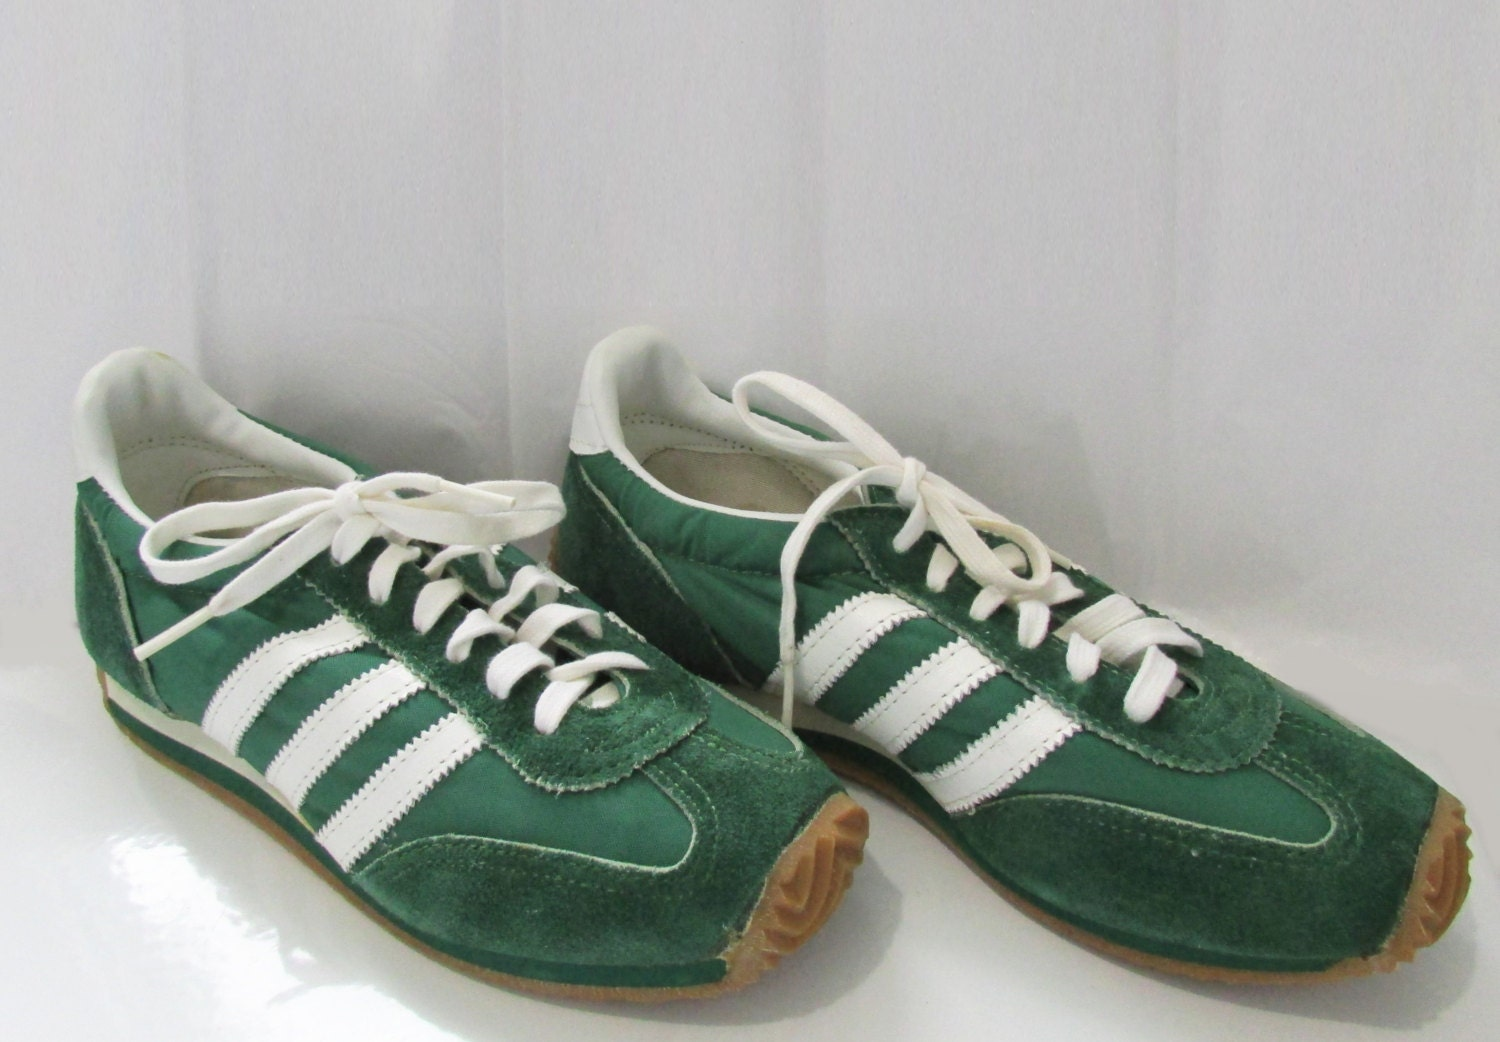 Sneakers Tennis Shoes Vintage 70's 7 1/2M NOS